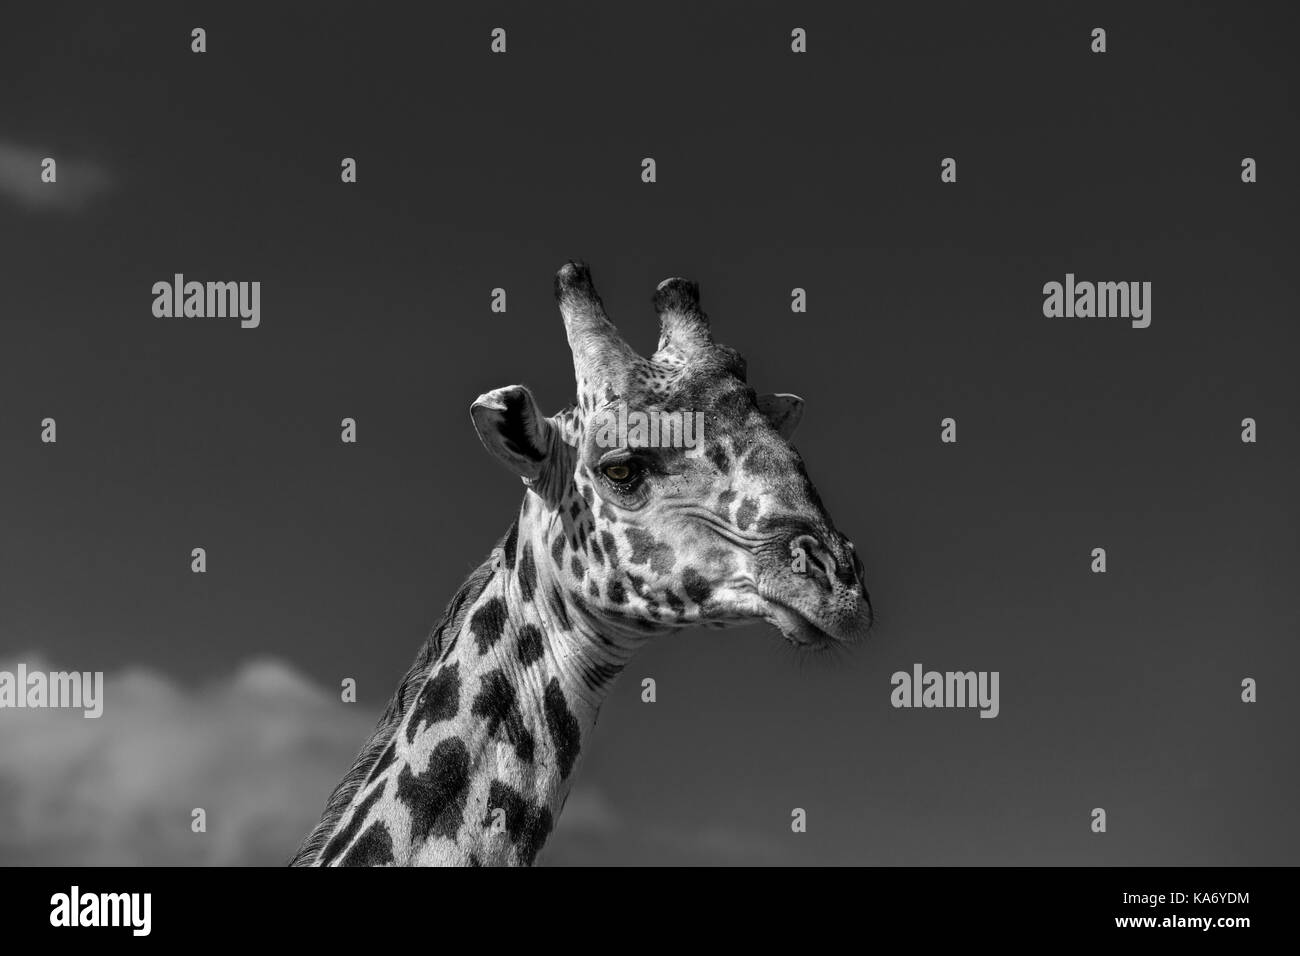 Close-up of head of Masai giraffe (Giraffa camelopardalis tippelskirchi) Masai Mara, Kenya in monochrome against - Stock Image